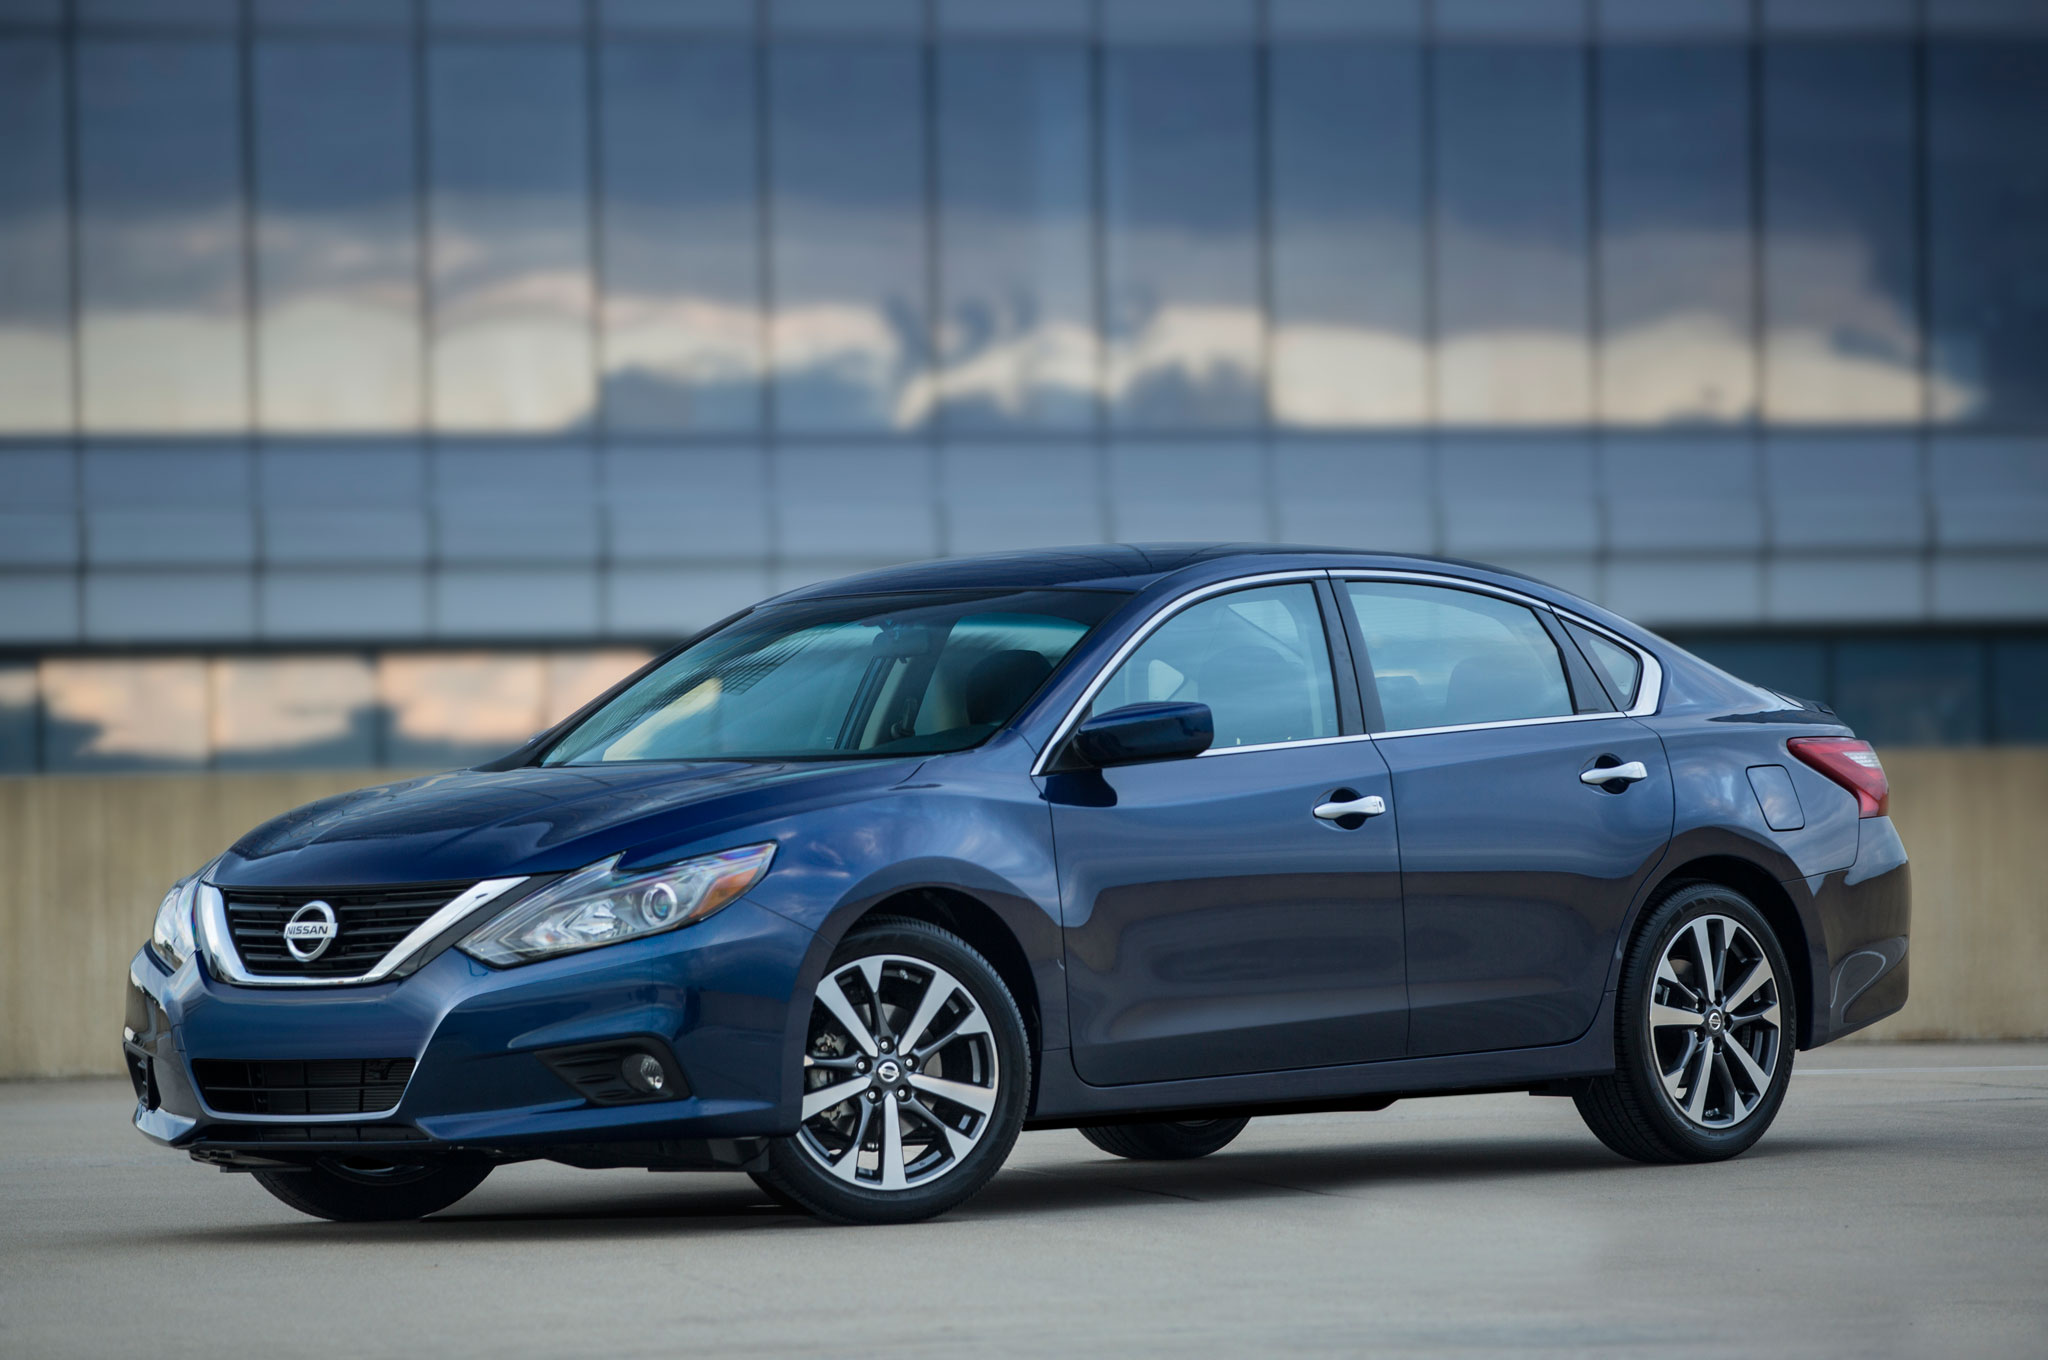 2016 Nissan Altima Updated with Maxima-Like Design, Improved MPG